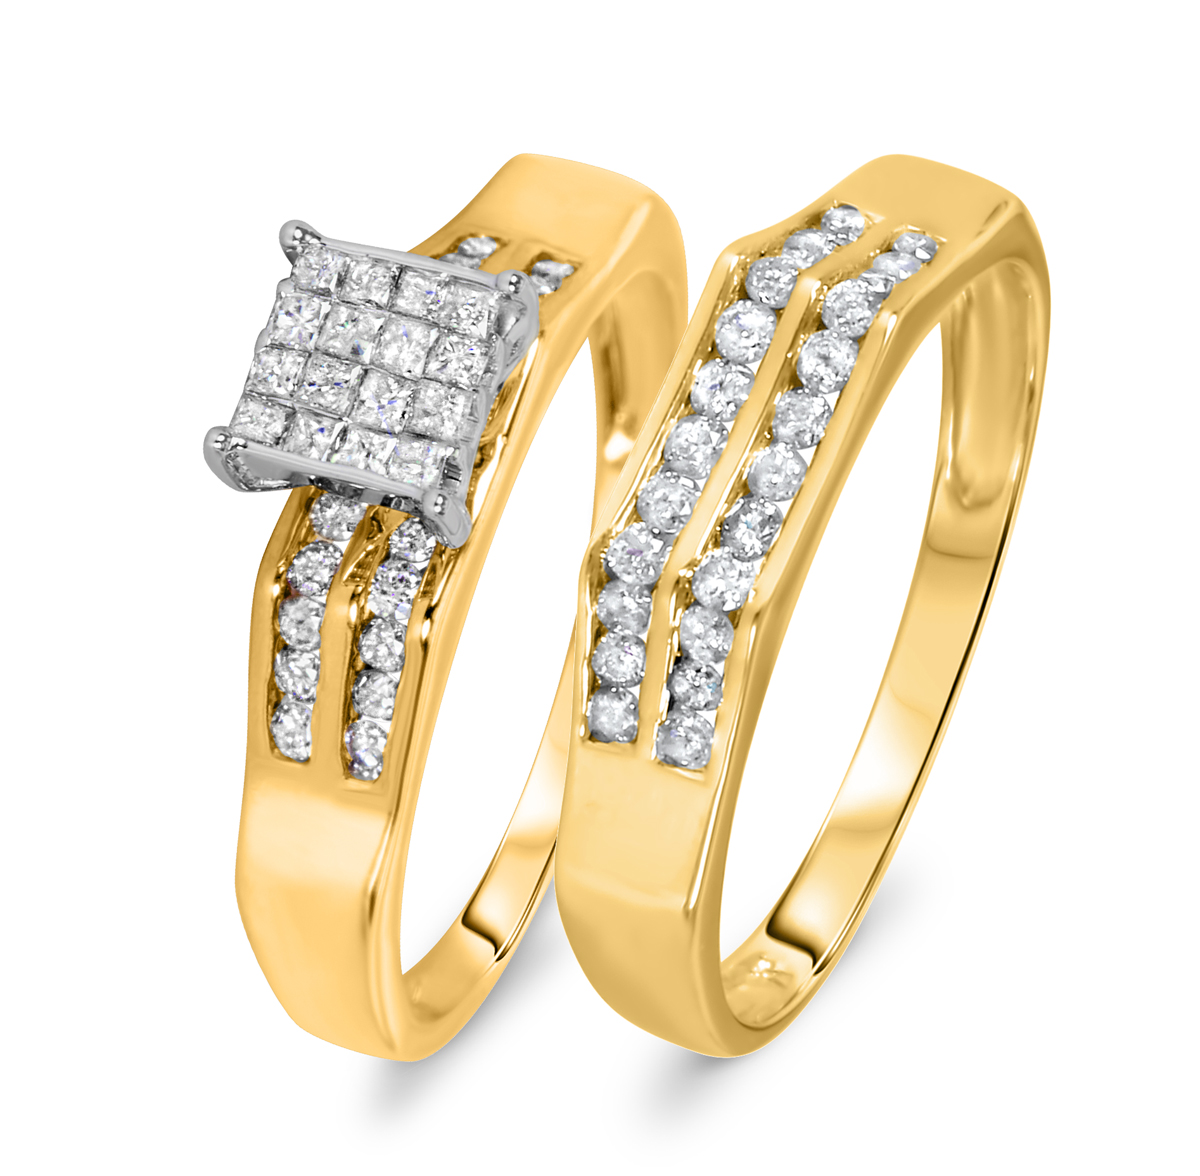 5/8 Carat Diamond Bridal Wedding Ring Set 10K Yellow Gold